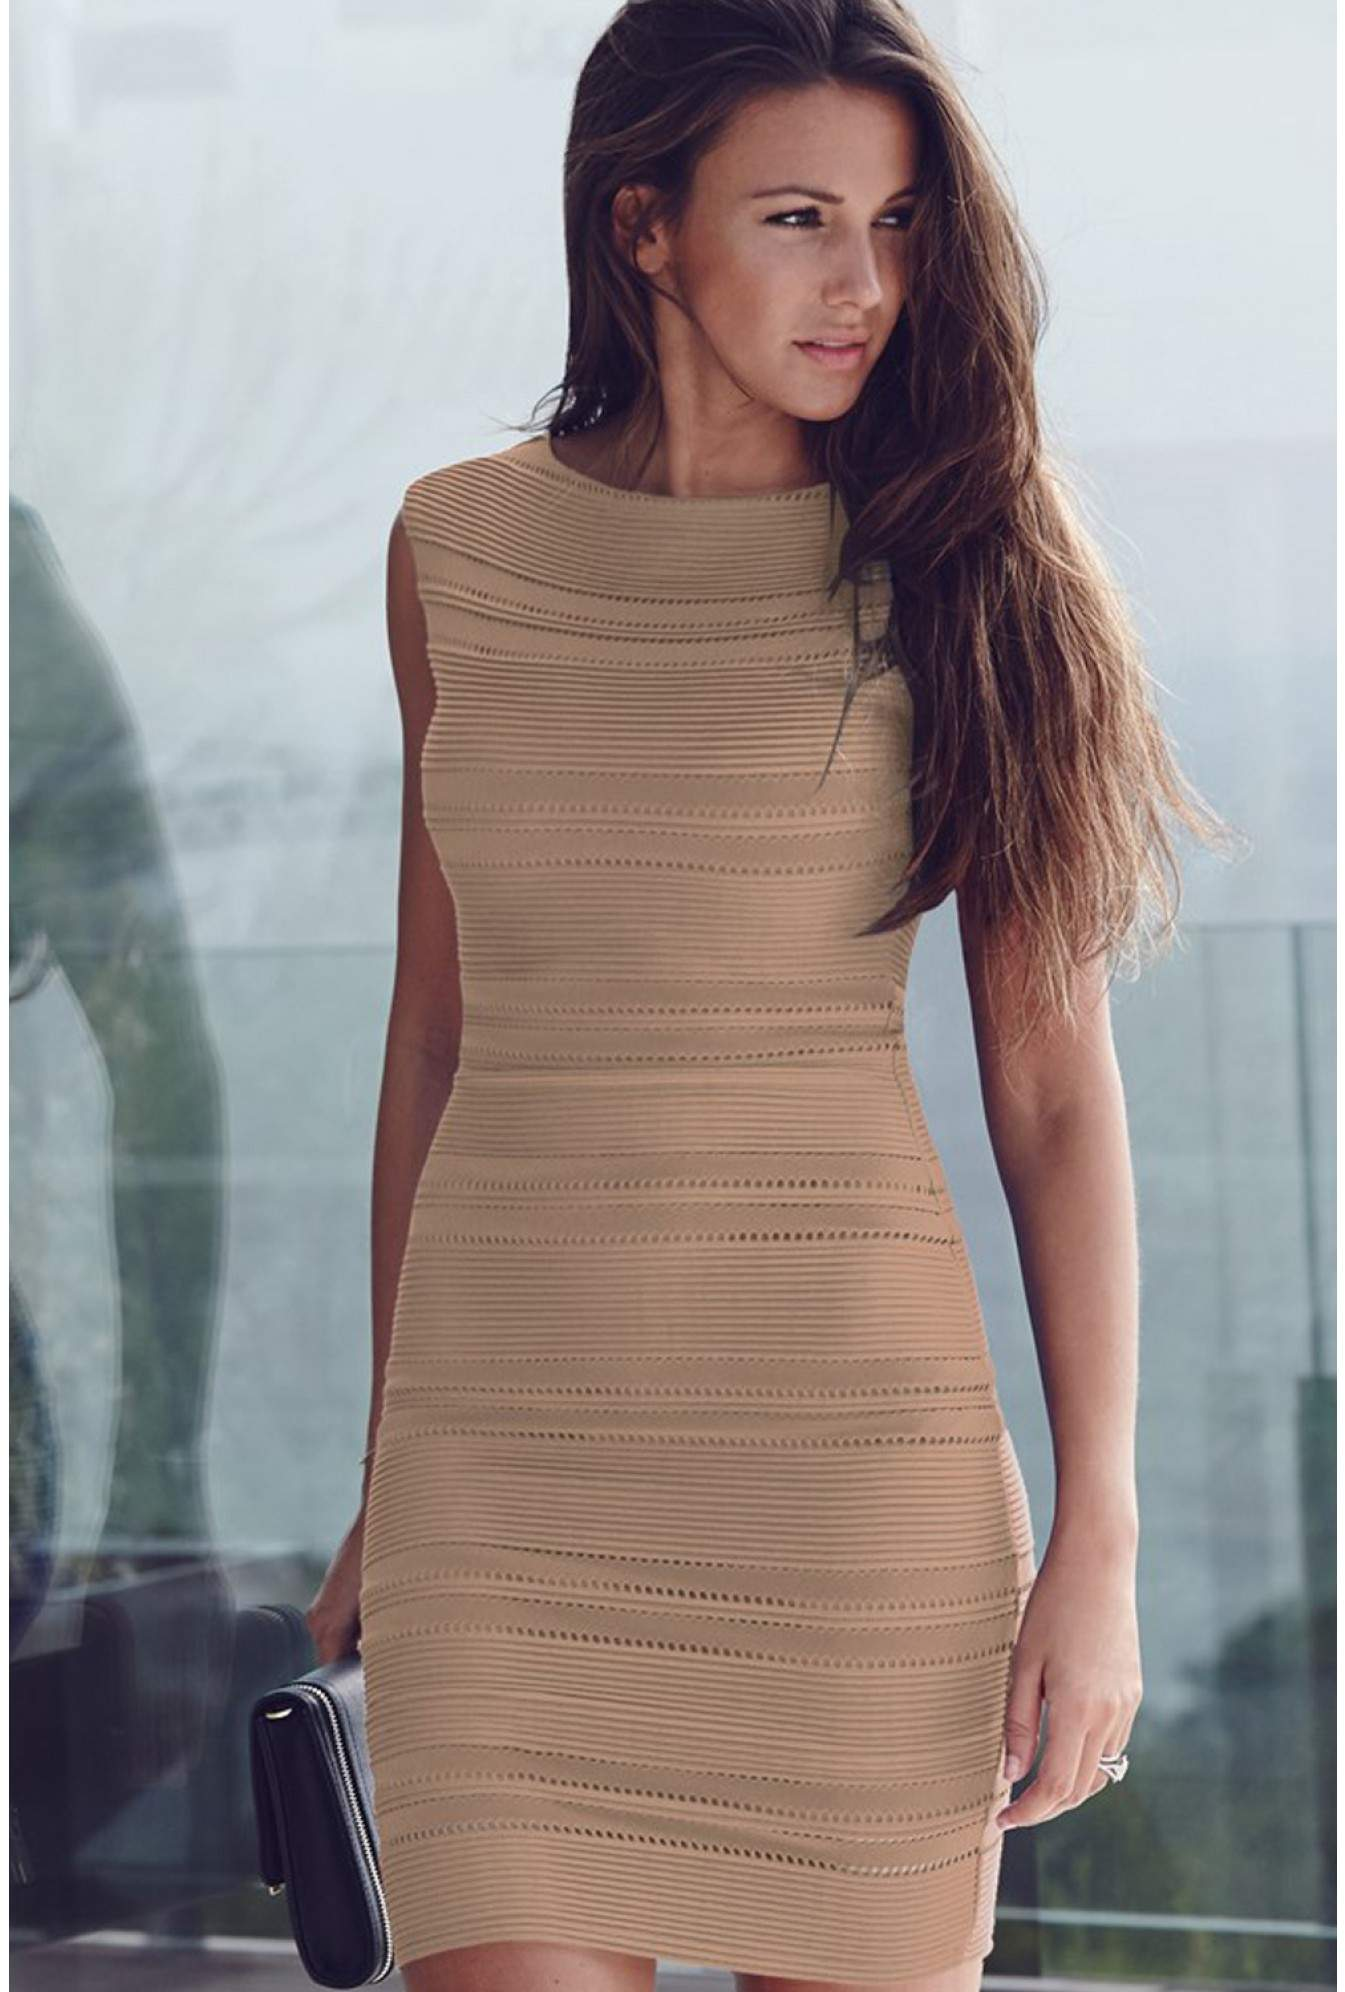 cacbe6aec8f0 Lipsy Michelle Keegan Ripple Midi Bodycon Dress in Nude | iCLOTHING